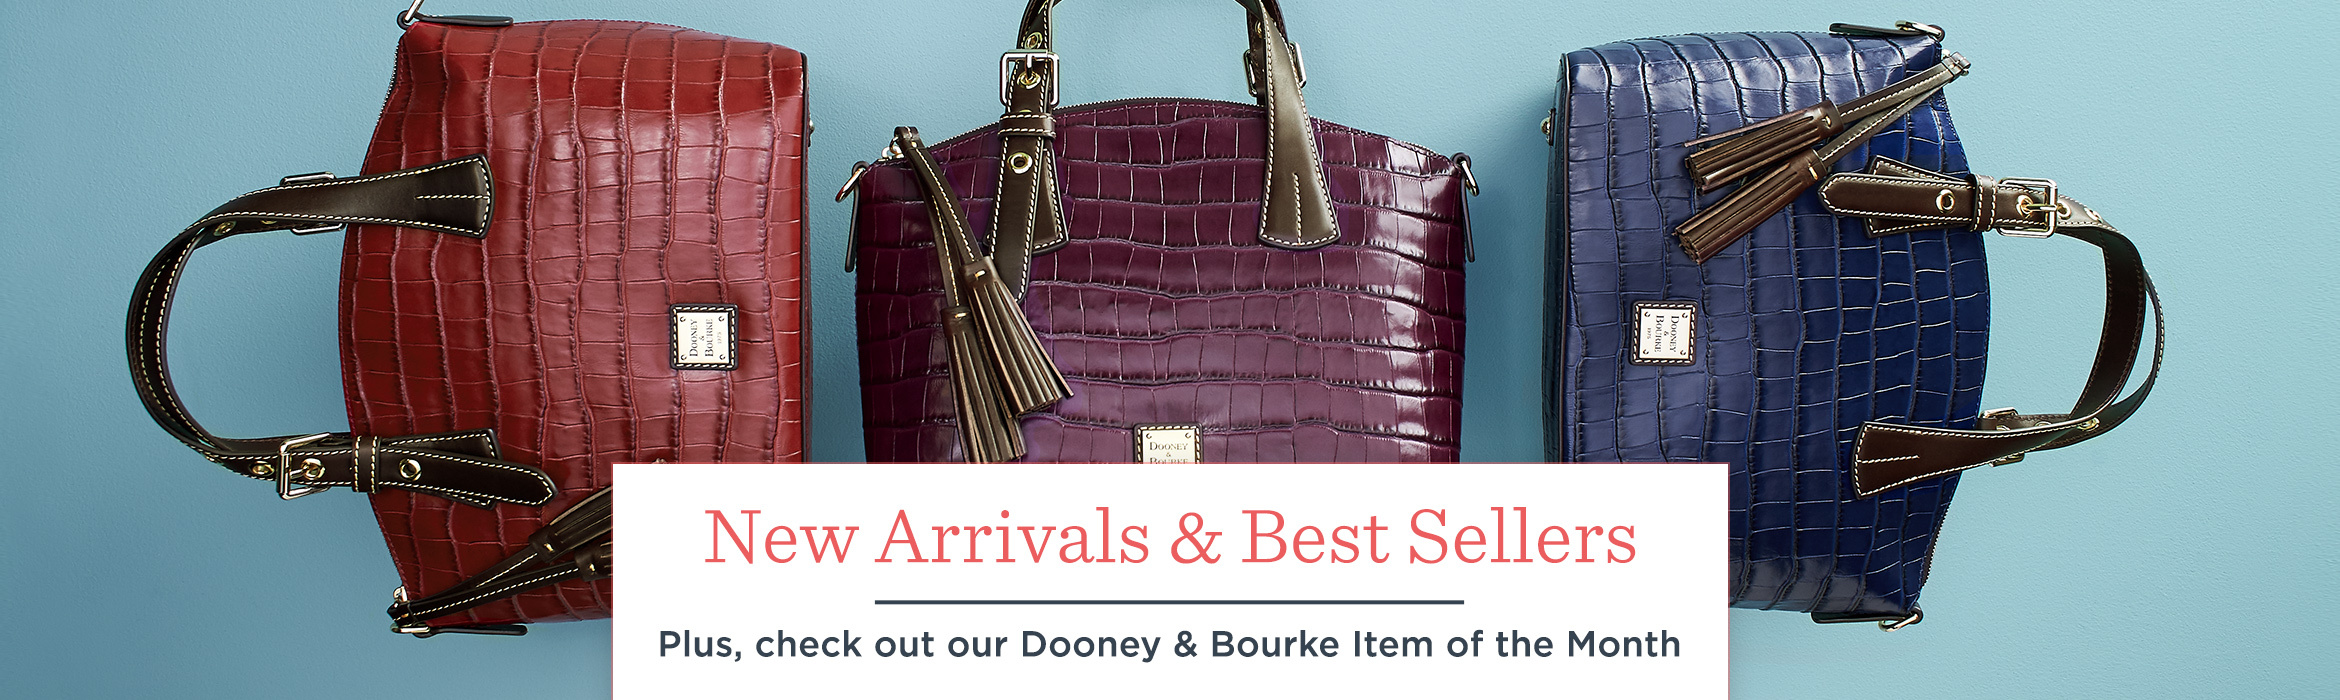 New Arrivals & Best Sellers  Plus, check out our Dooney & Bourke Item of the Month